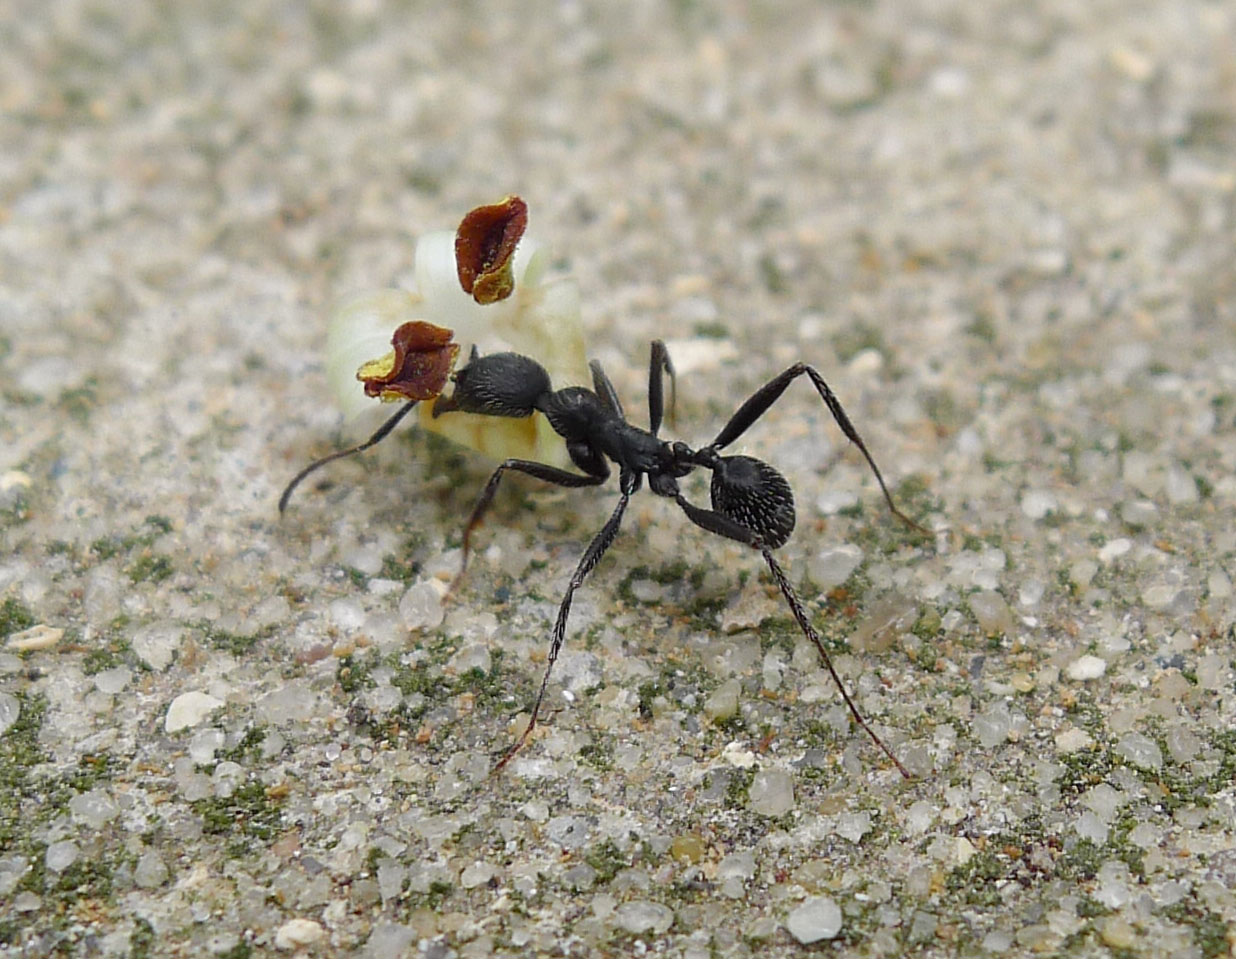 Aphaenogaster_senilis_%28_or_close_relative%29_%2831625740770%29.jpg